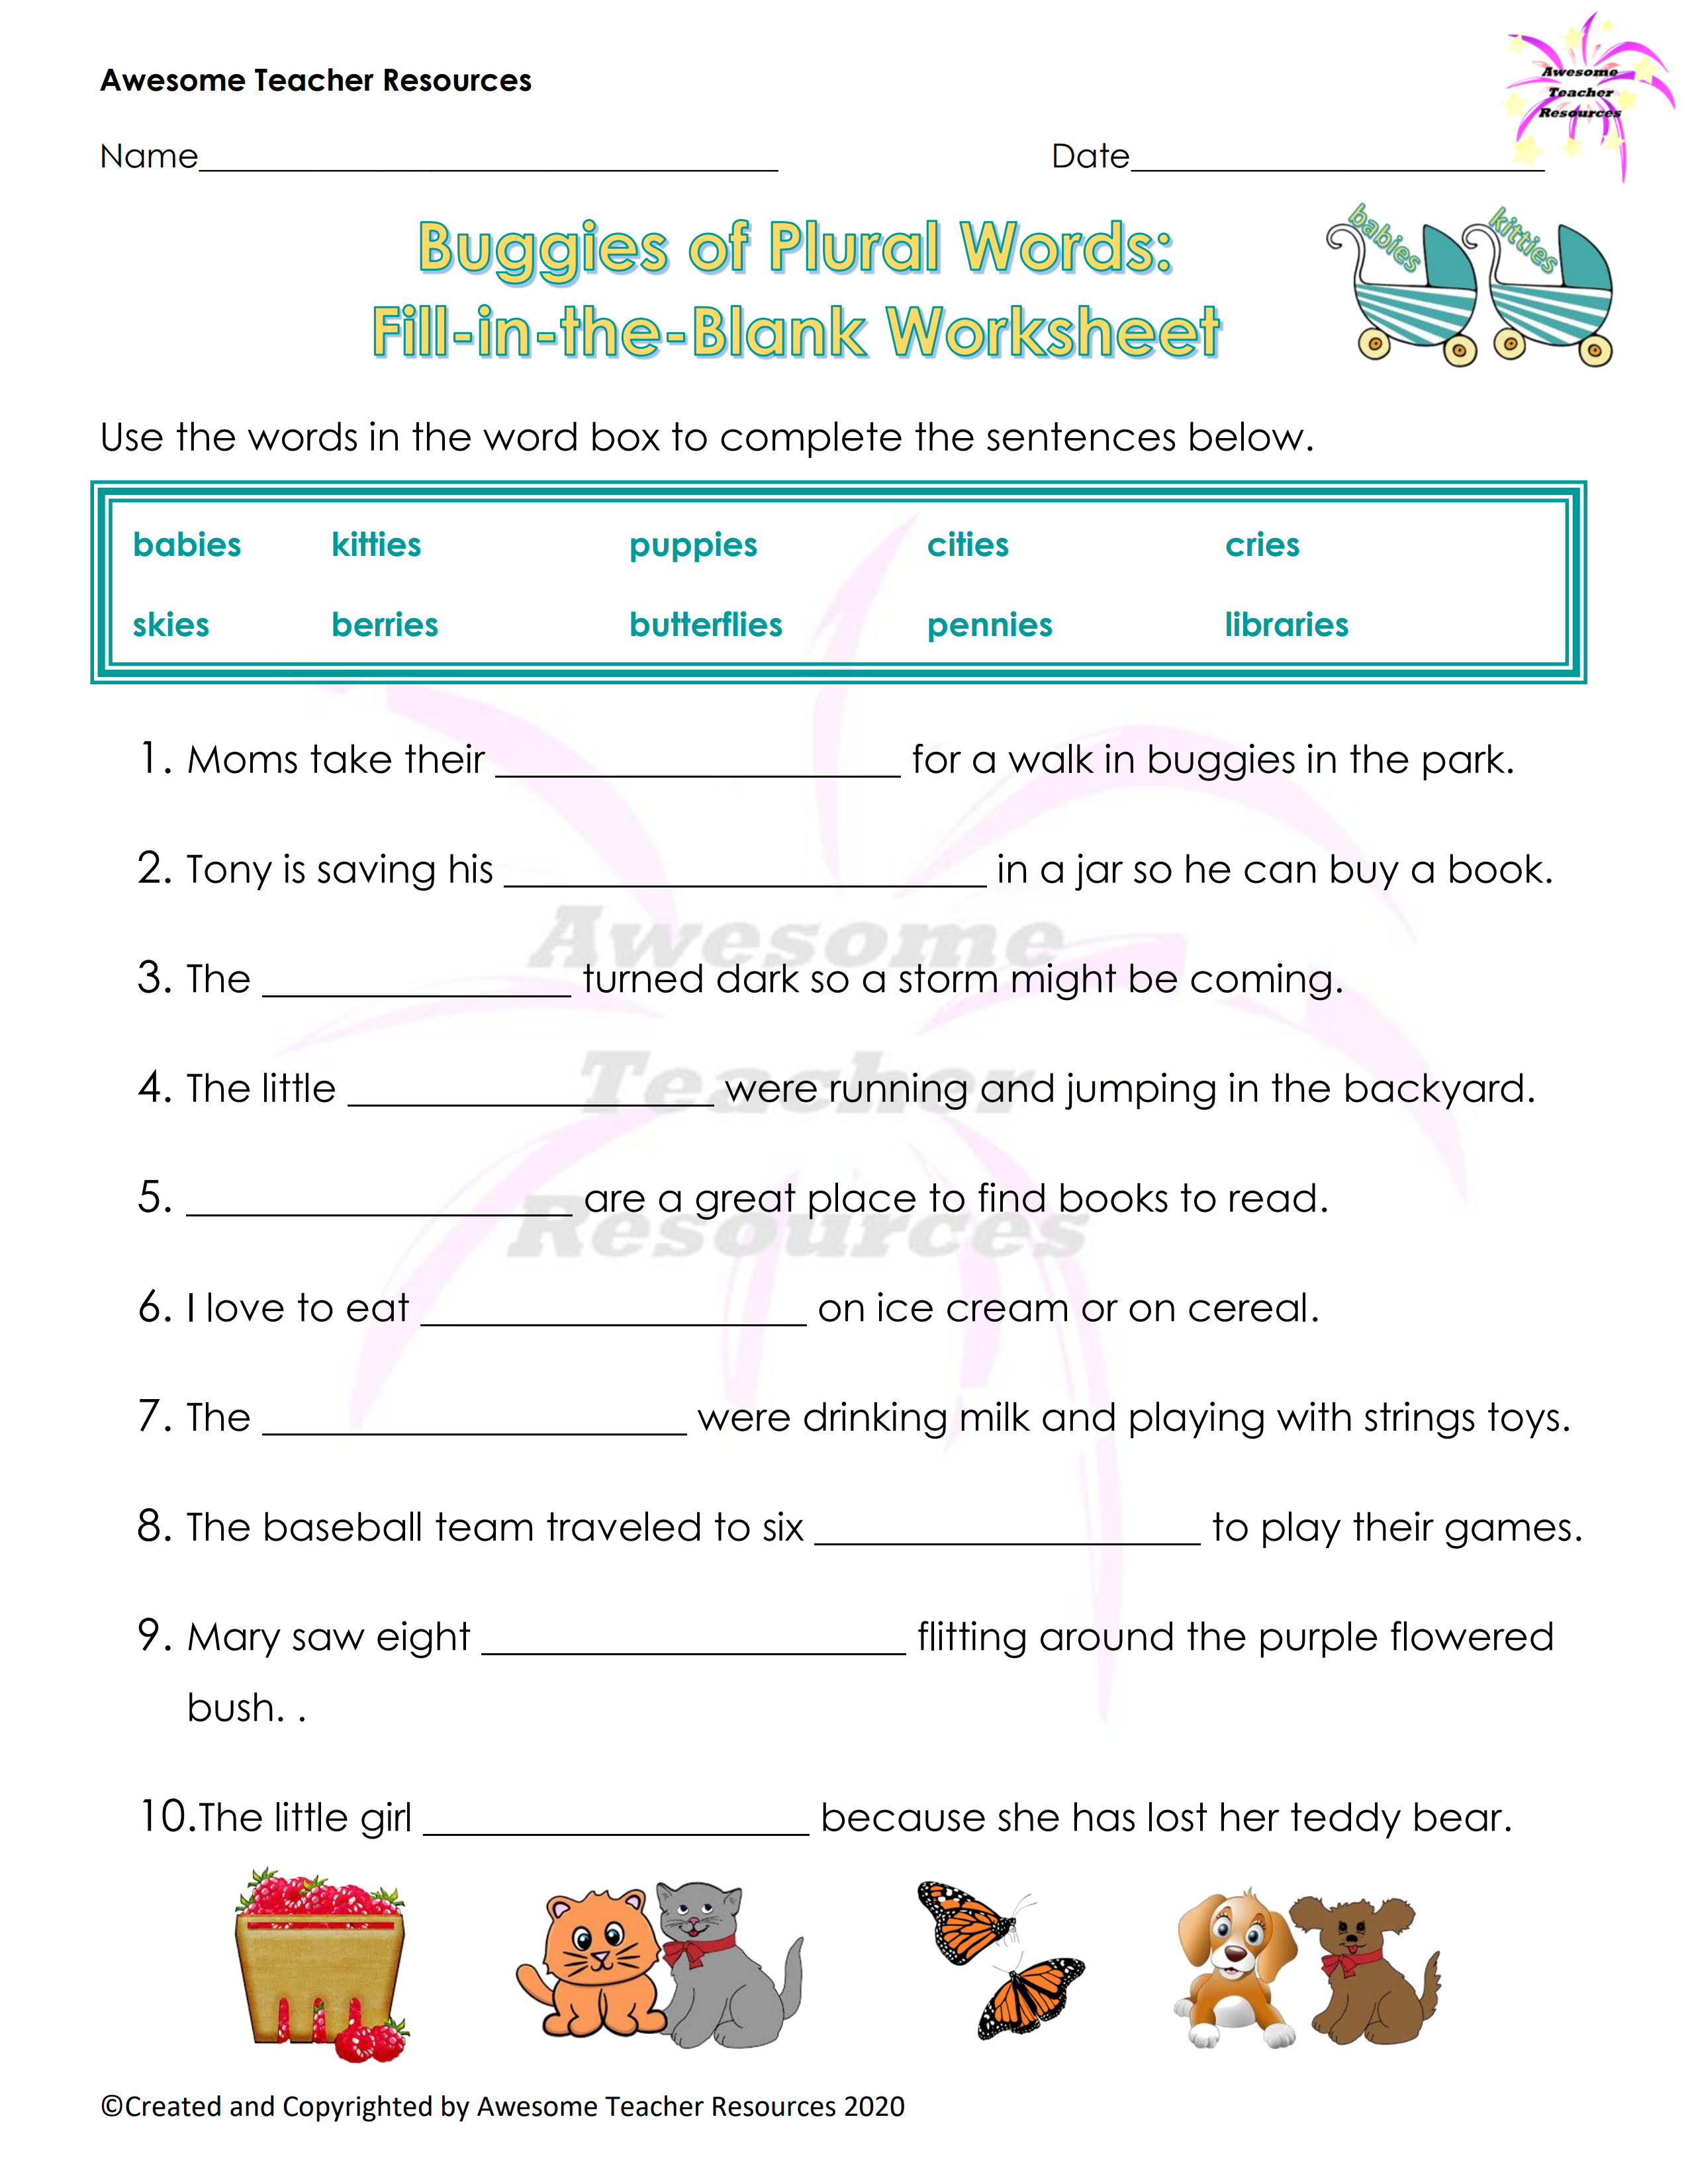 Buggies Of Plural Words Fill In The Blank Worksheet